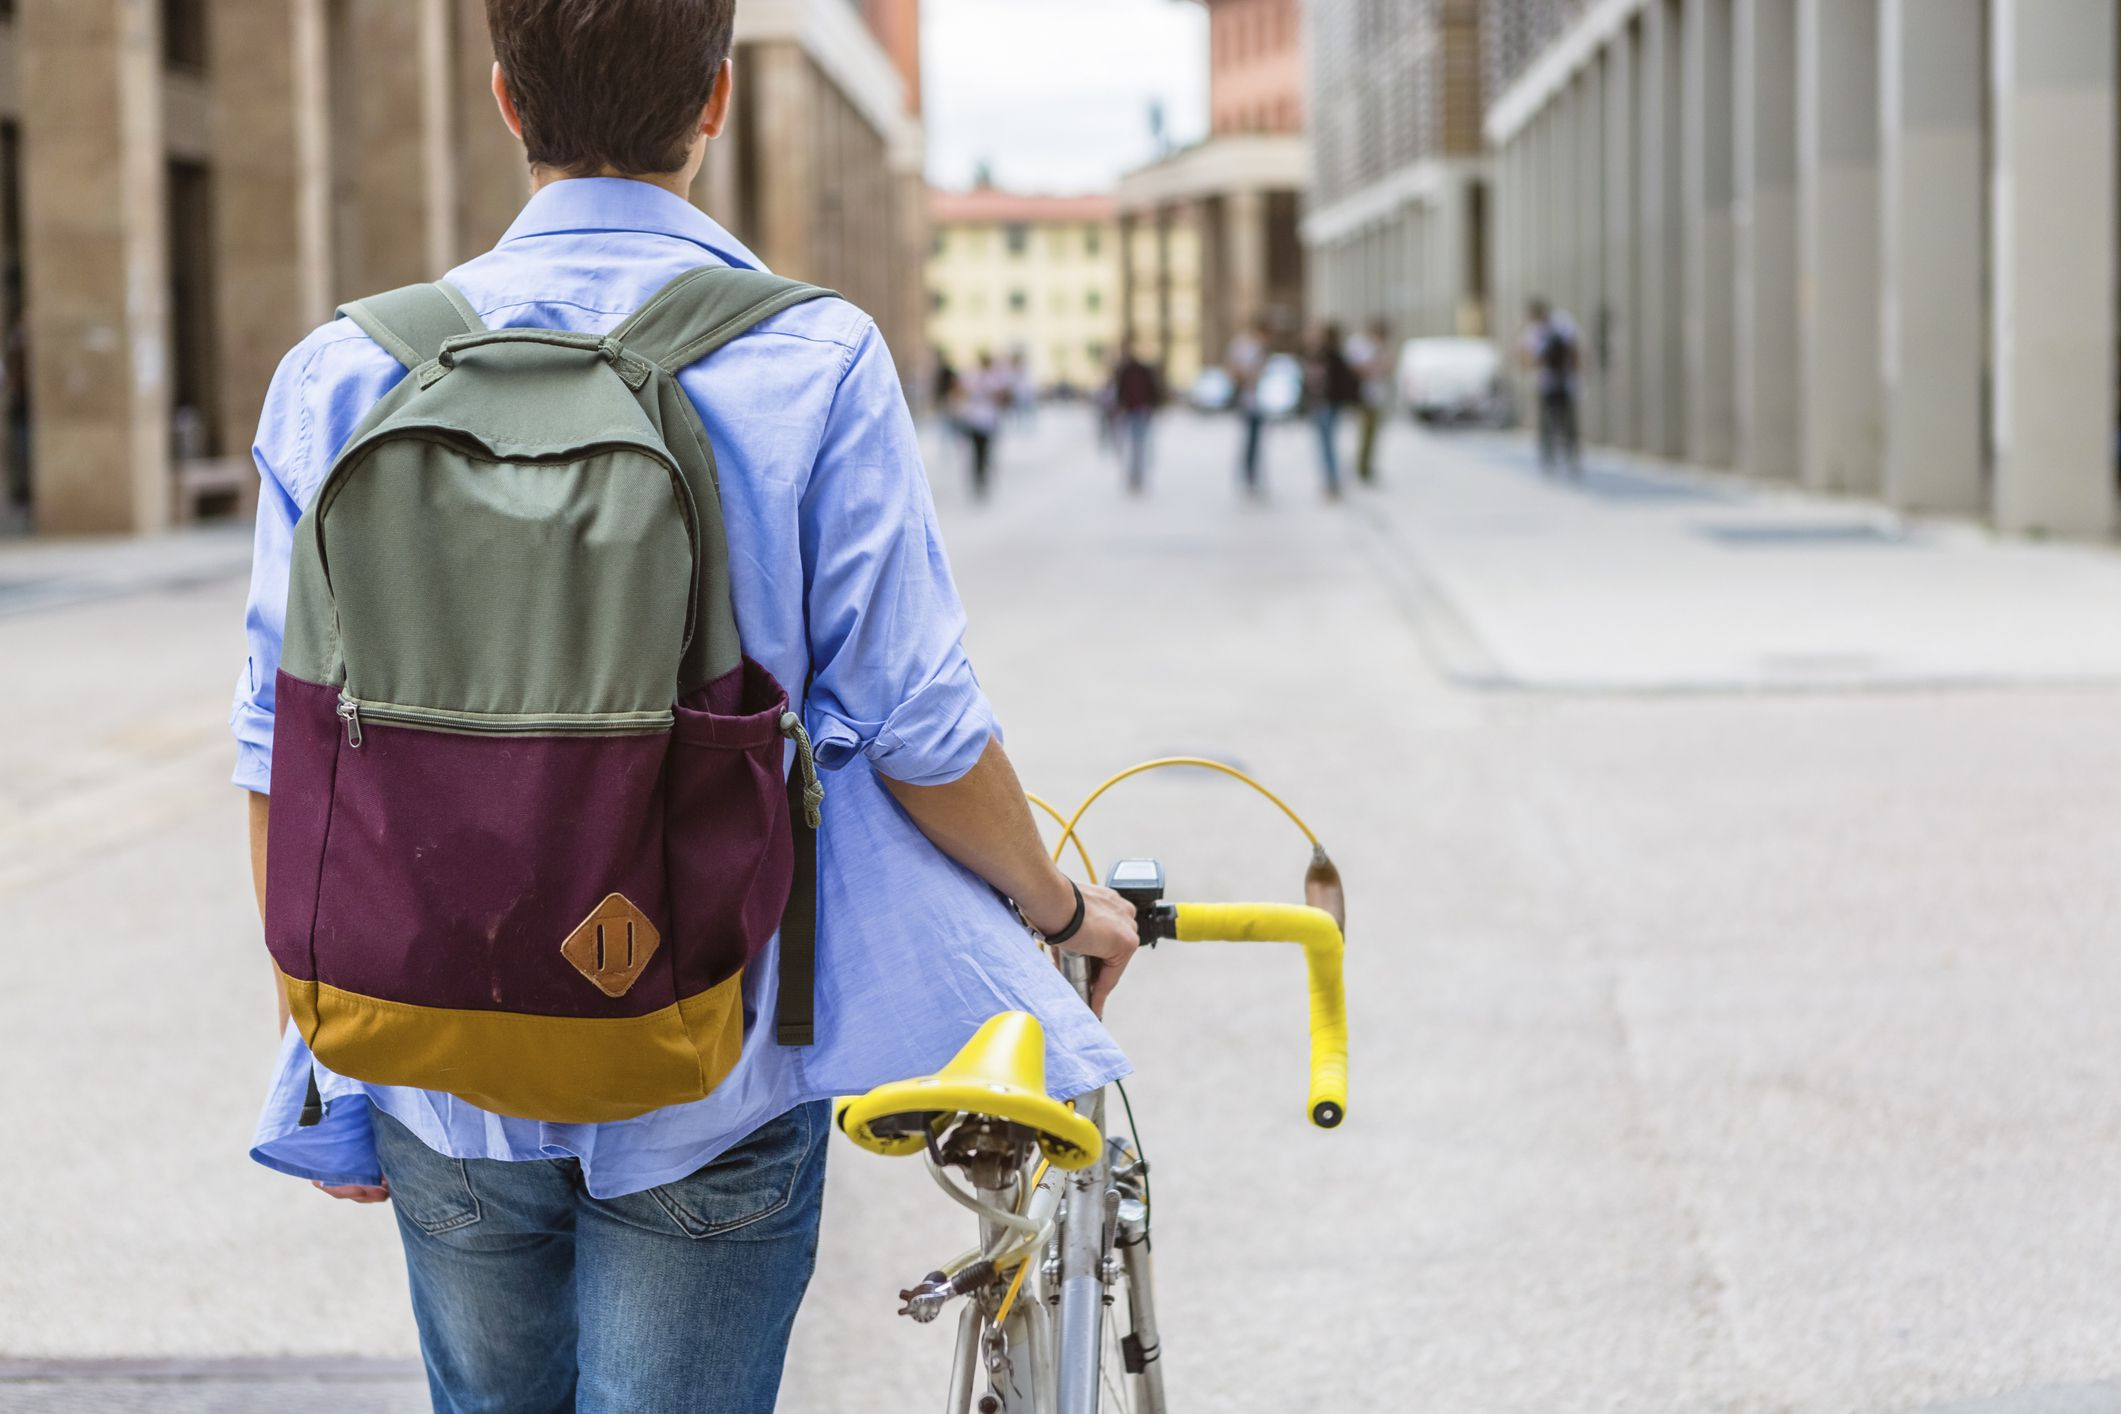 Should You Buy a Law School Backpack?